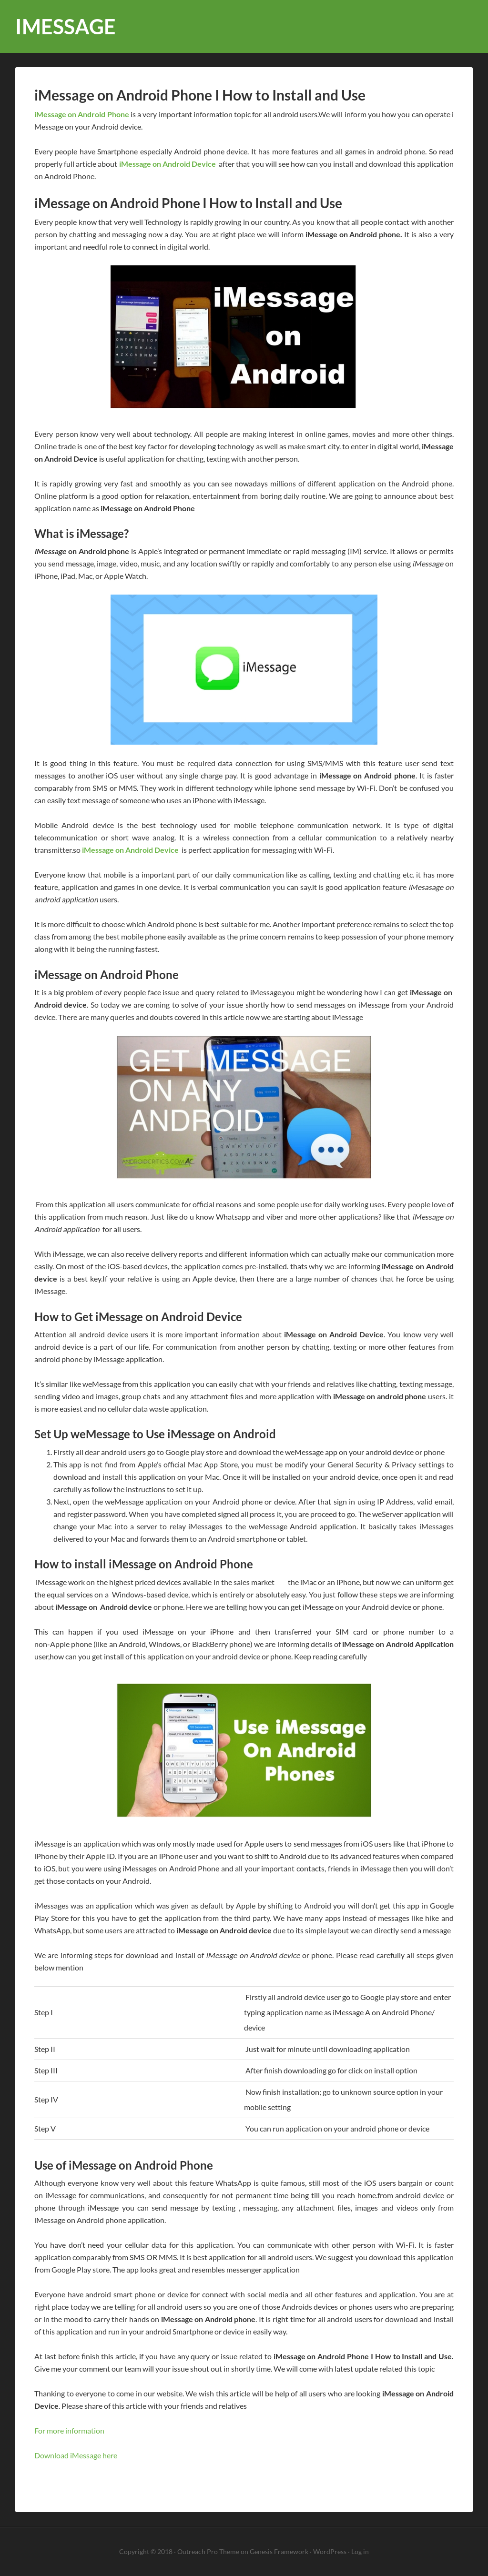 Imessage For Android Competitors, Revenue and Employees